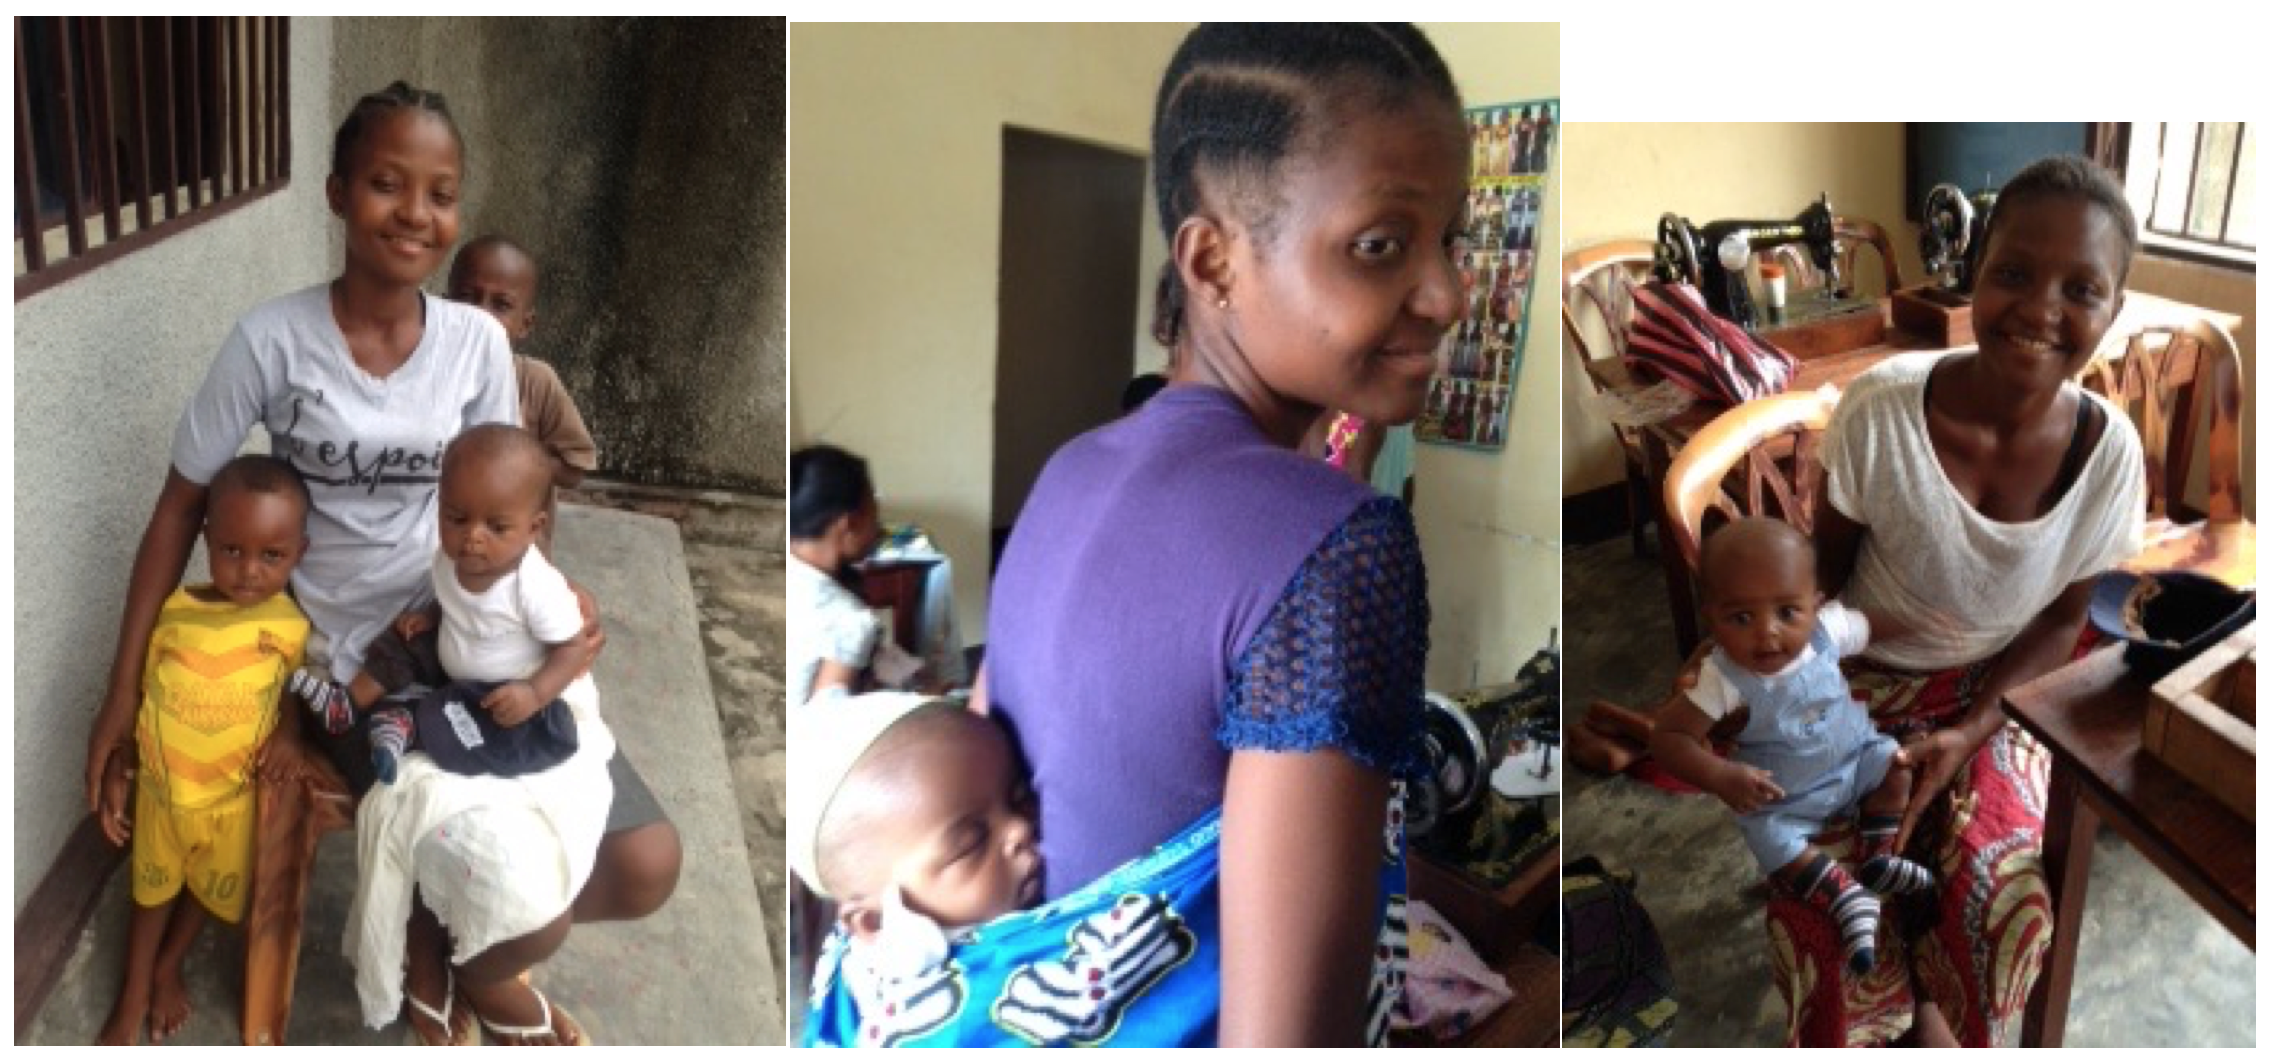 Sarah's children often attend Sewing Training with her. She now has HOPE for the future.